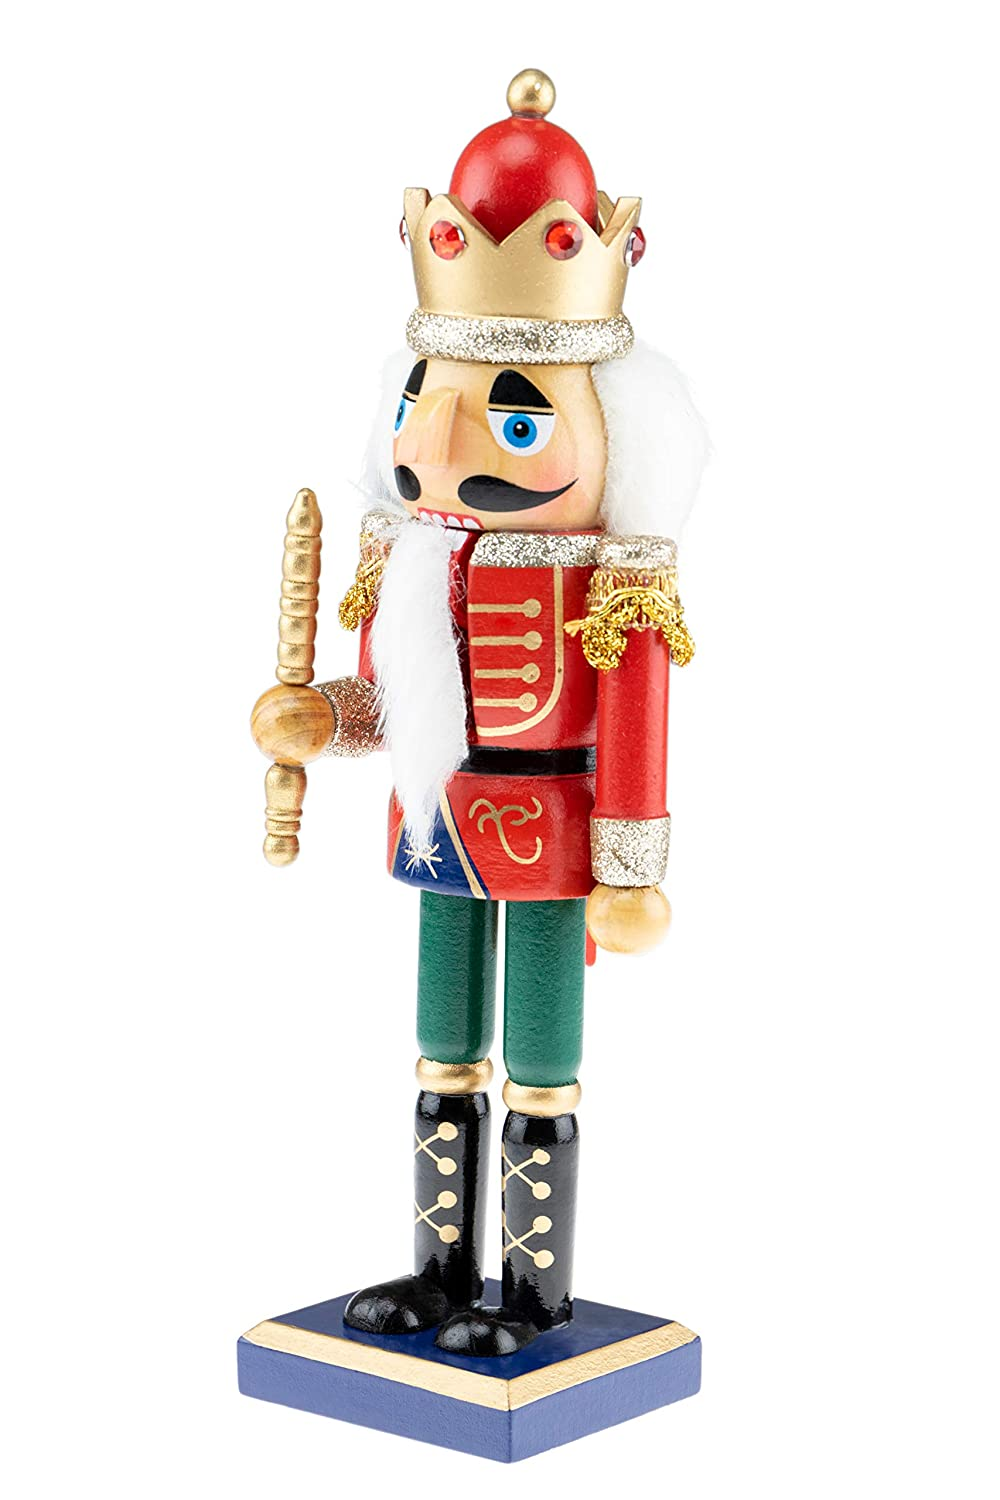 Festive Christmas Decor 10 Tall Perfect for Shelves Traditional Wooden Design Great for Any Collection Green Clever Creations Christmas King Nutcracker and Gold Uniform with Scepter Red